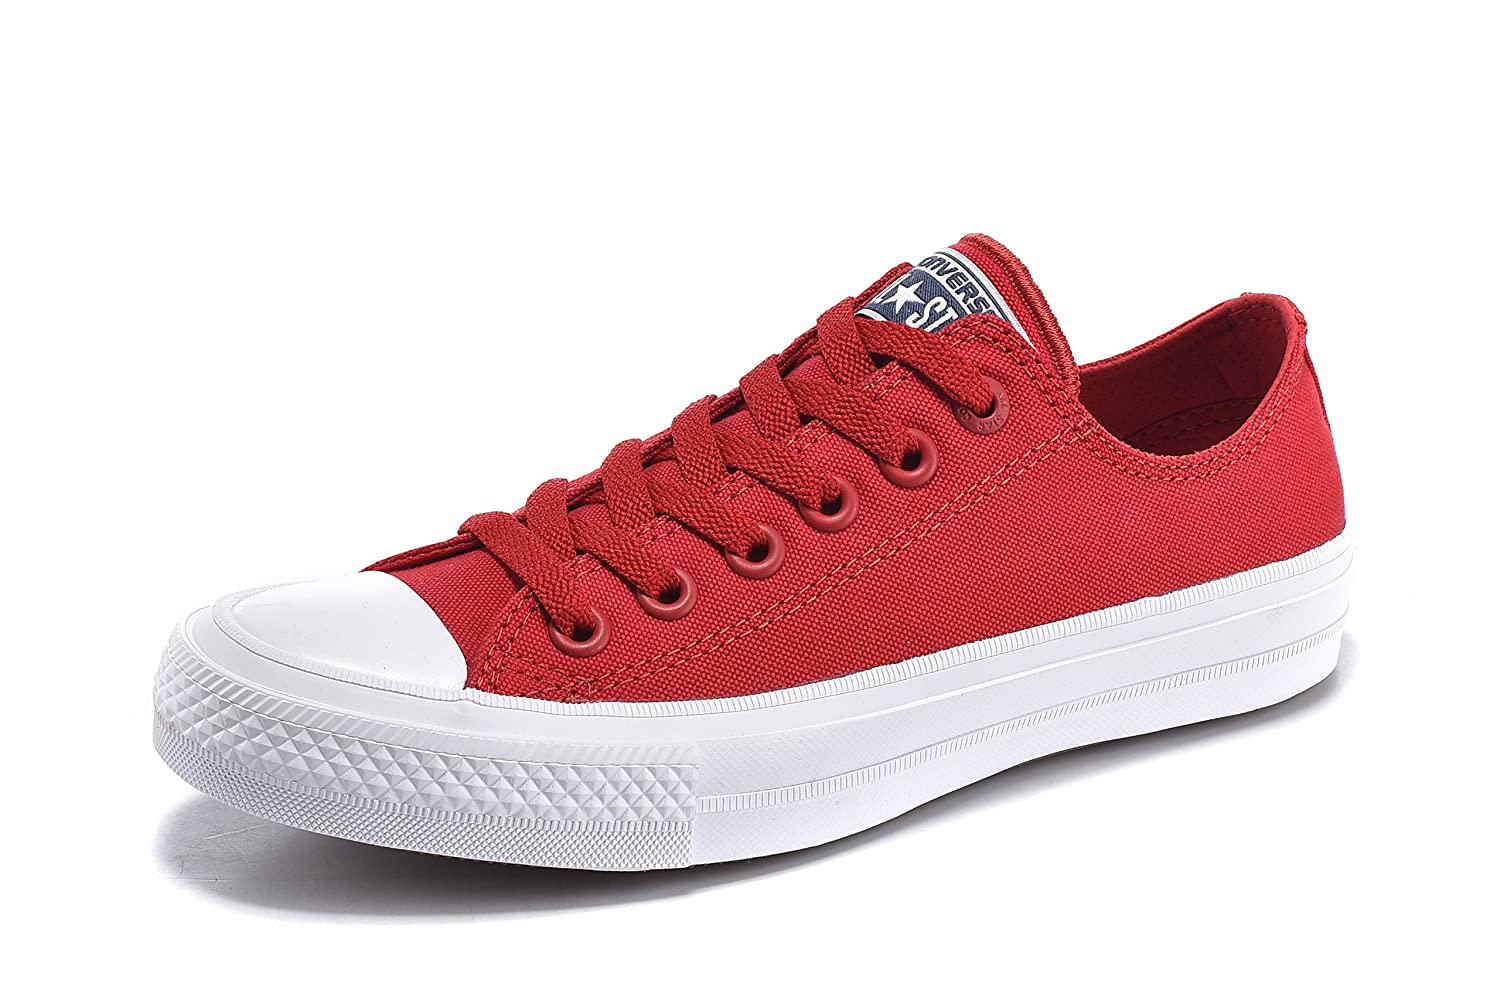 Converse Unisex Low Top Chuck Taylor All Star II Canvas Shoes B01HAF2JH4 9.5 US W/7.5 US M/EUR 41|Salsa Red